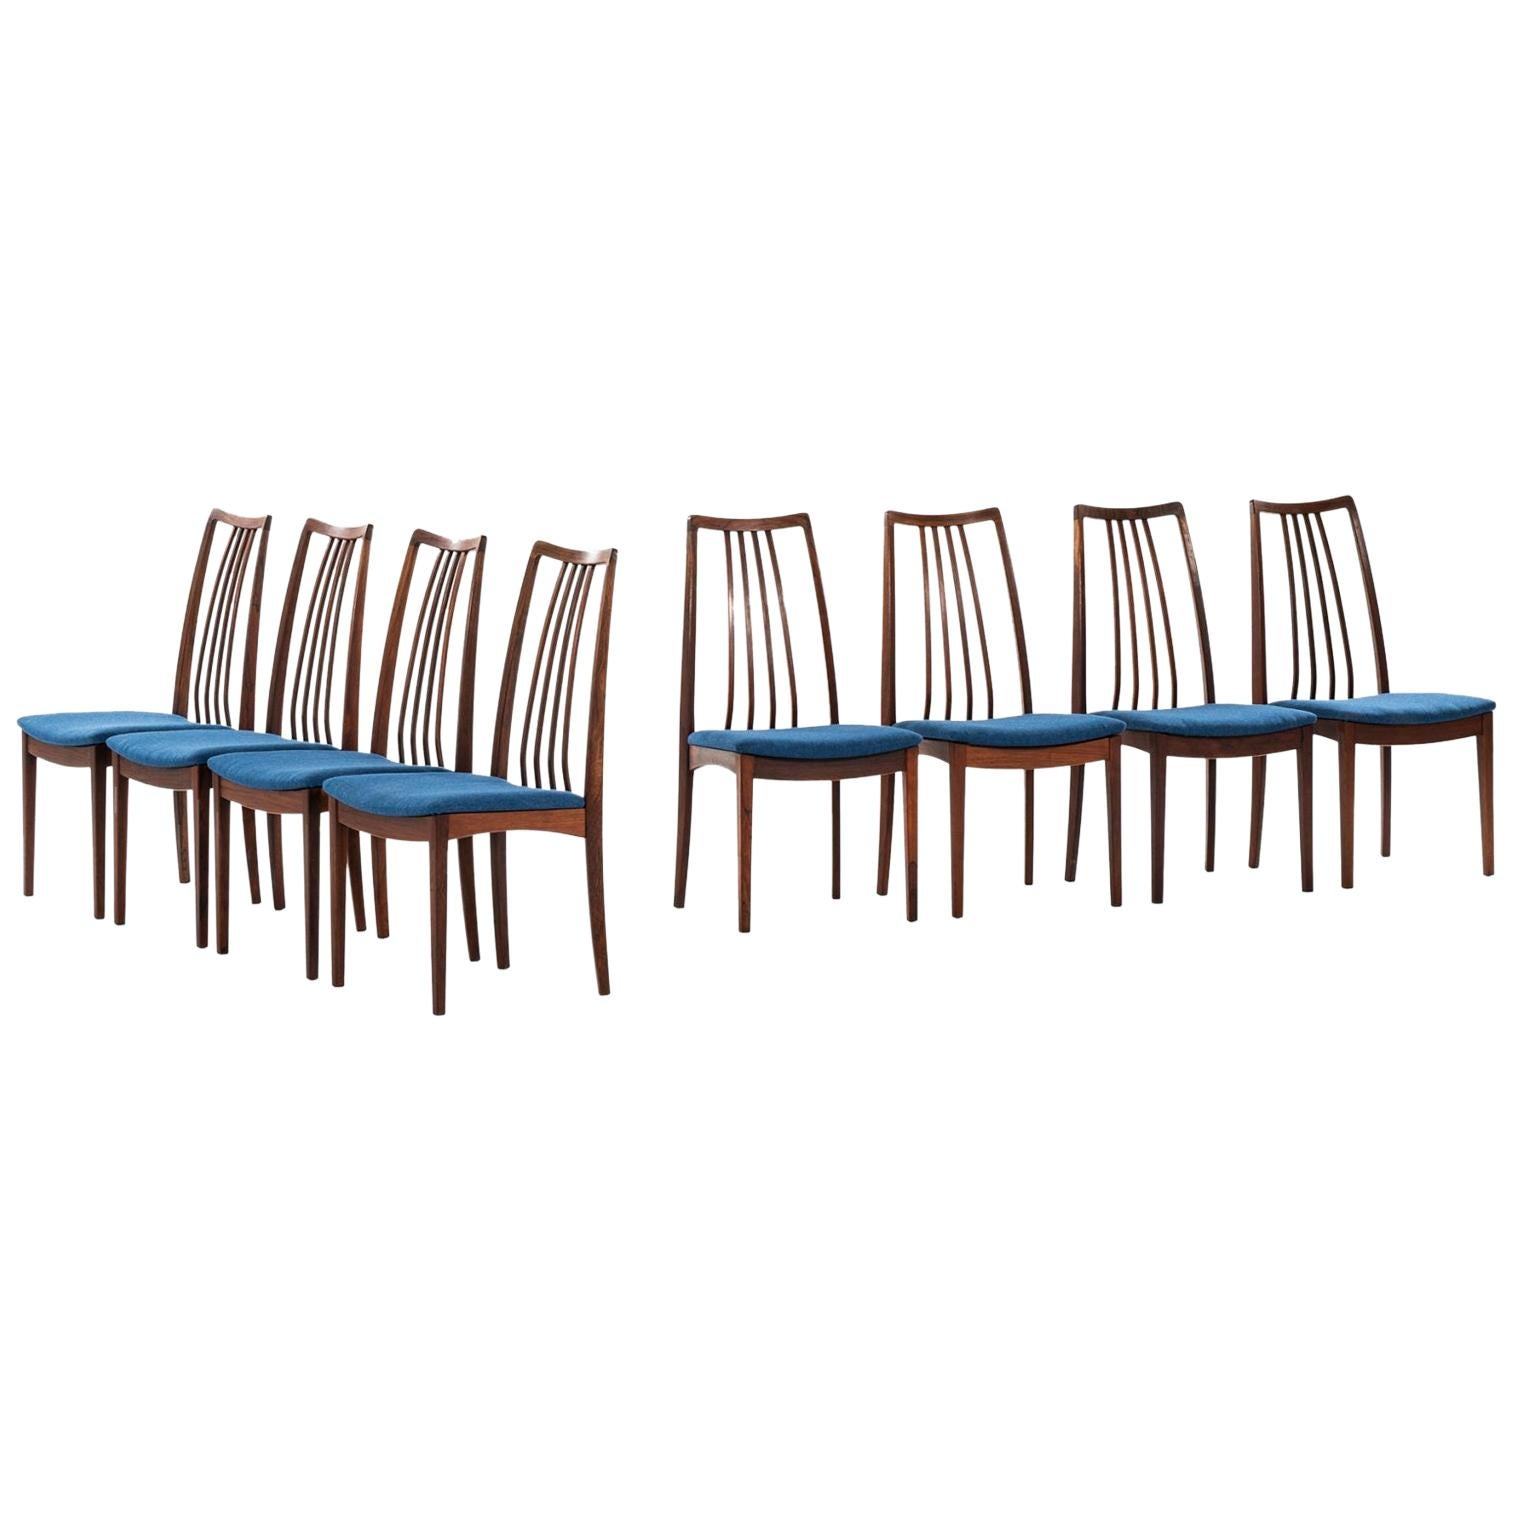 Dining Chairs Attributed to Niels Kofoed Produced in Denmark